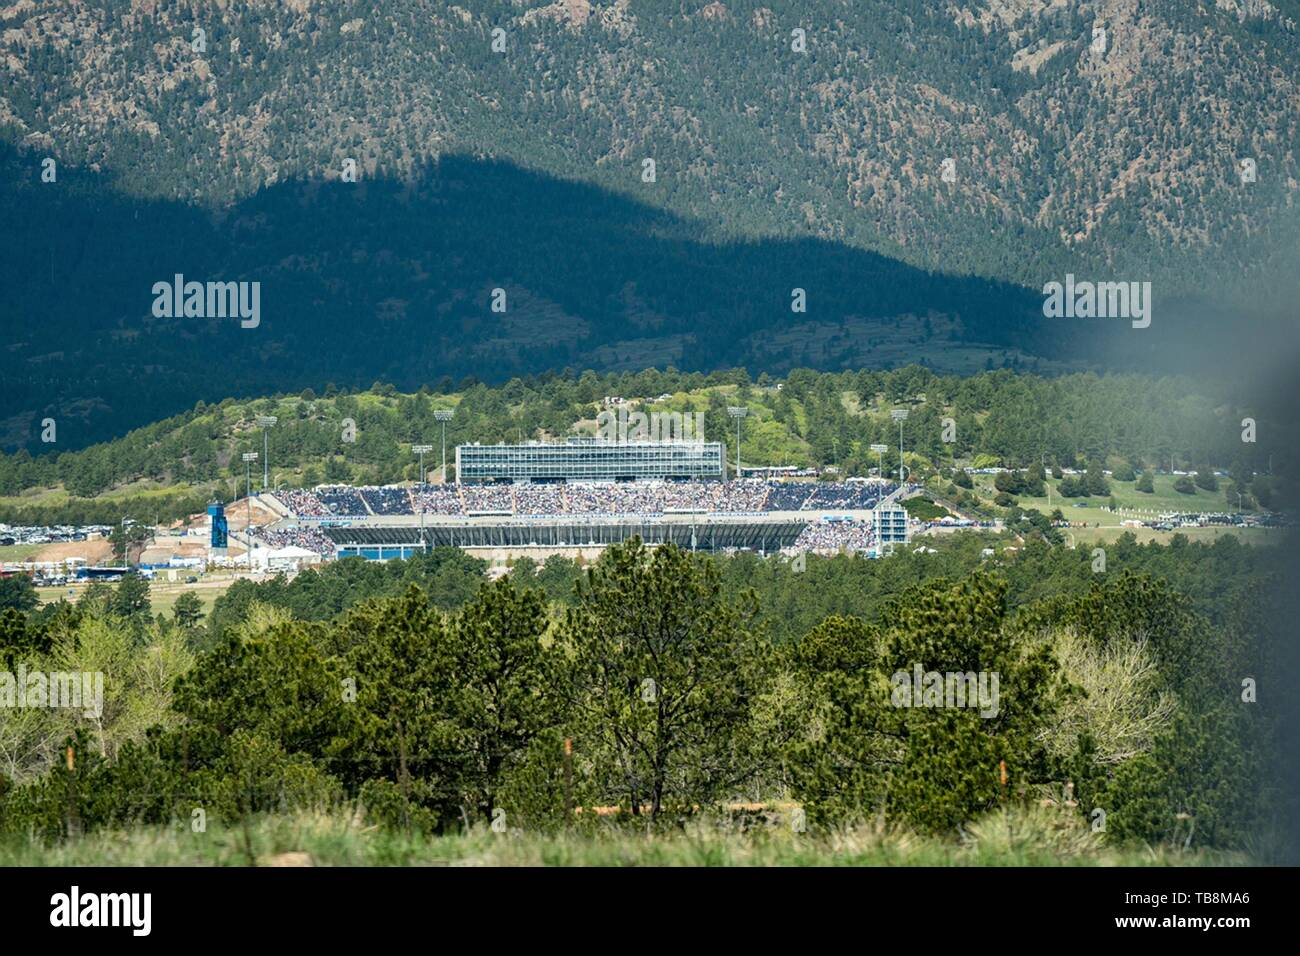 Colorado Springs, Colorado, USA. 30th May, 2019. Aerial view of the U.S Air Force Academy Falcon Stadium filled to capacity for the 2019 Graduation Ceremony May 30, 2019 in Colorado Springs, Colorado. Credit: Planetpix/Alamy Live News - Stock Image